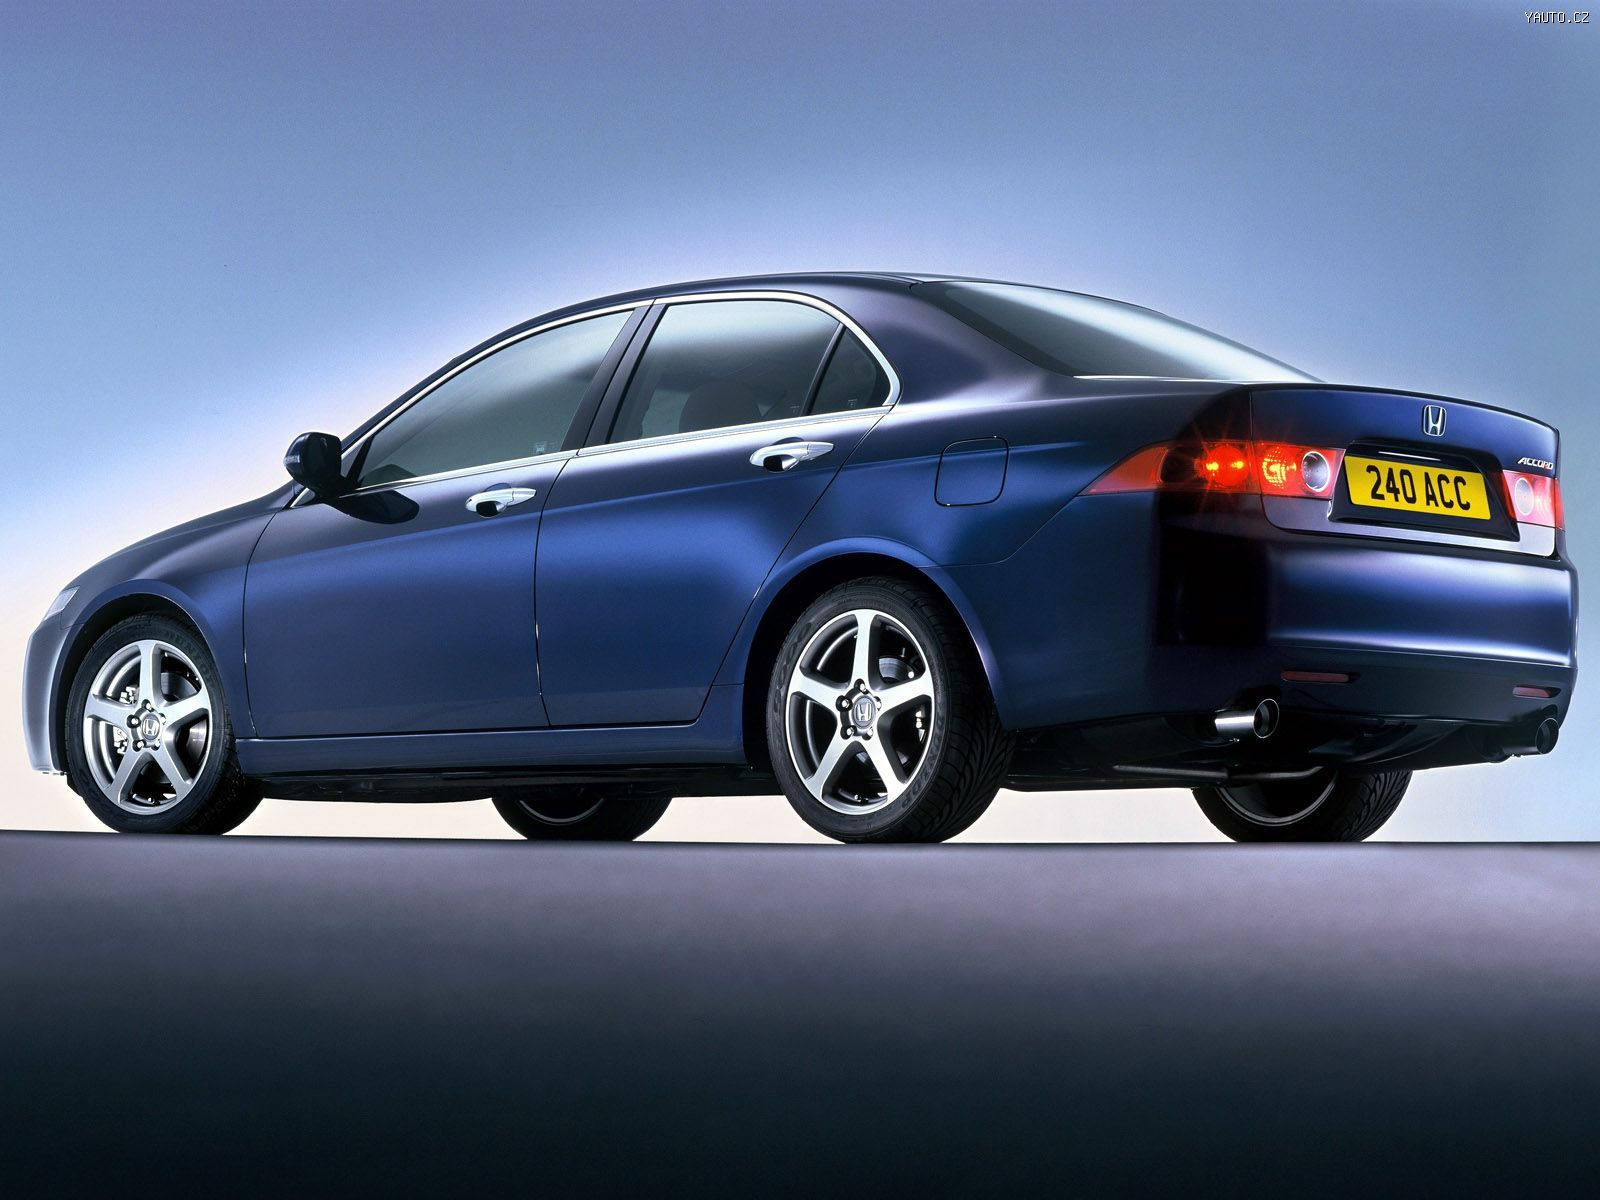 2003 Honda Accord Concept photo - 3